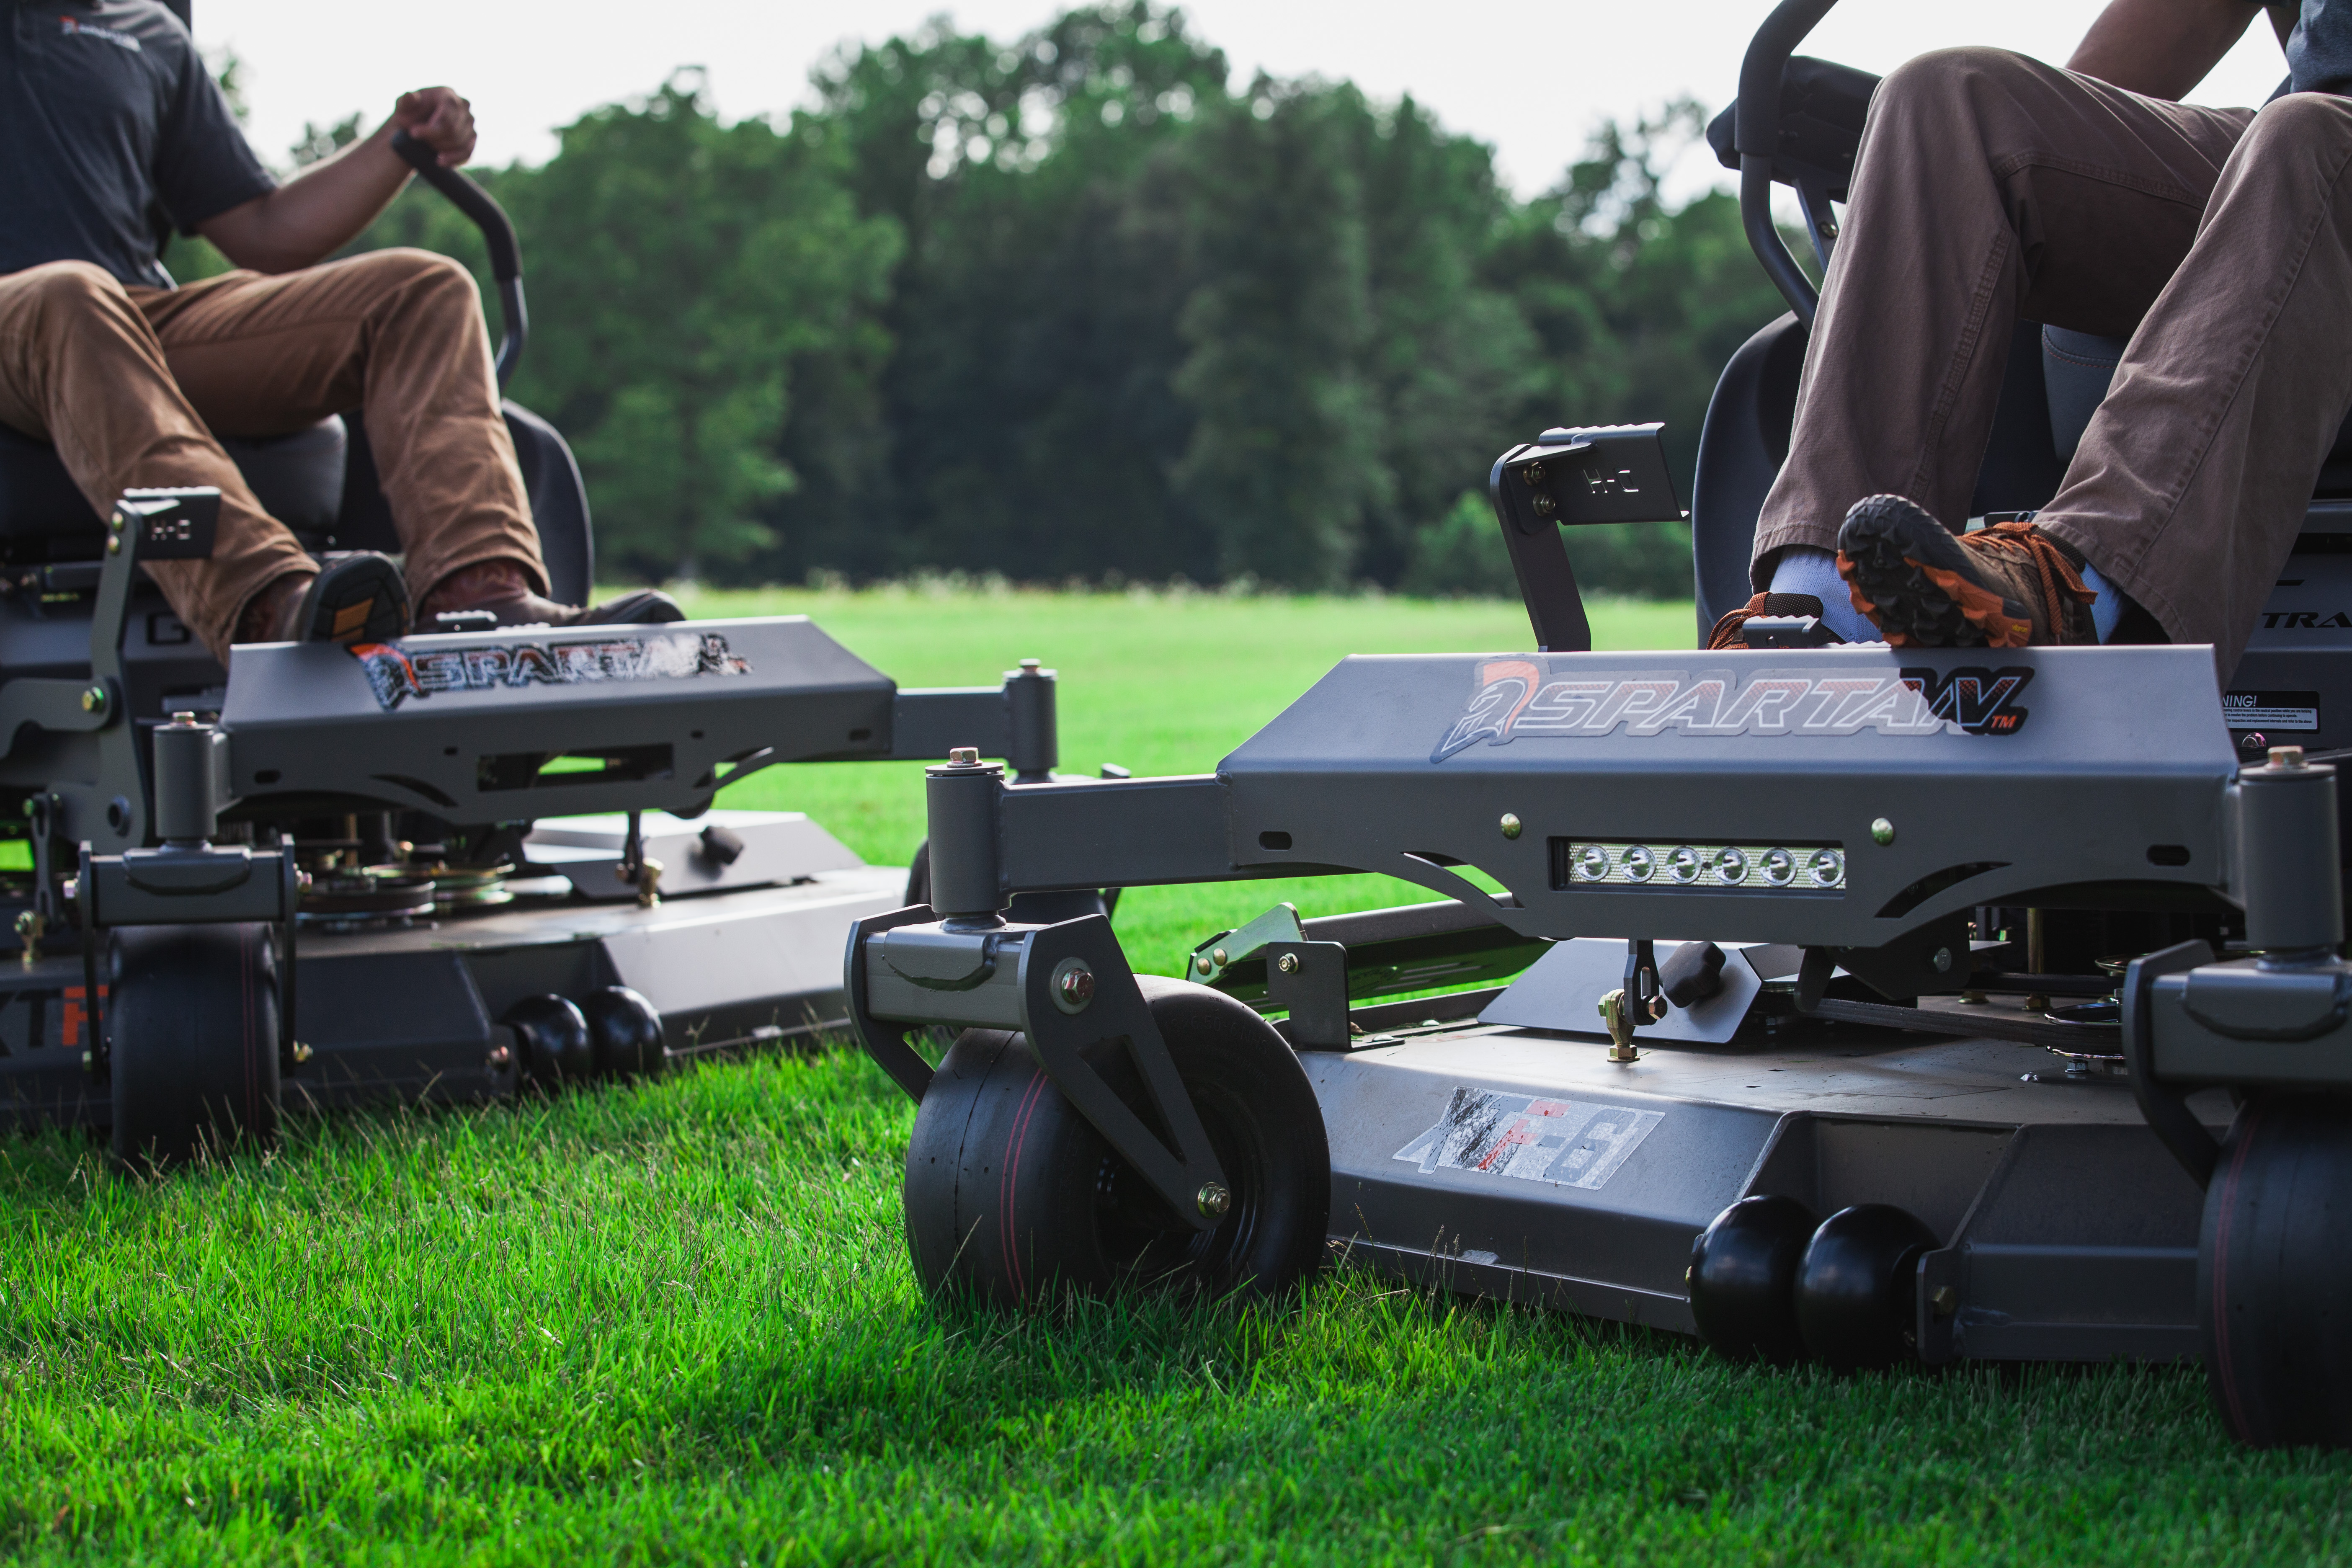 Compare Spartan Zero Turn Mowers on our website.